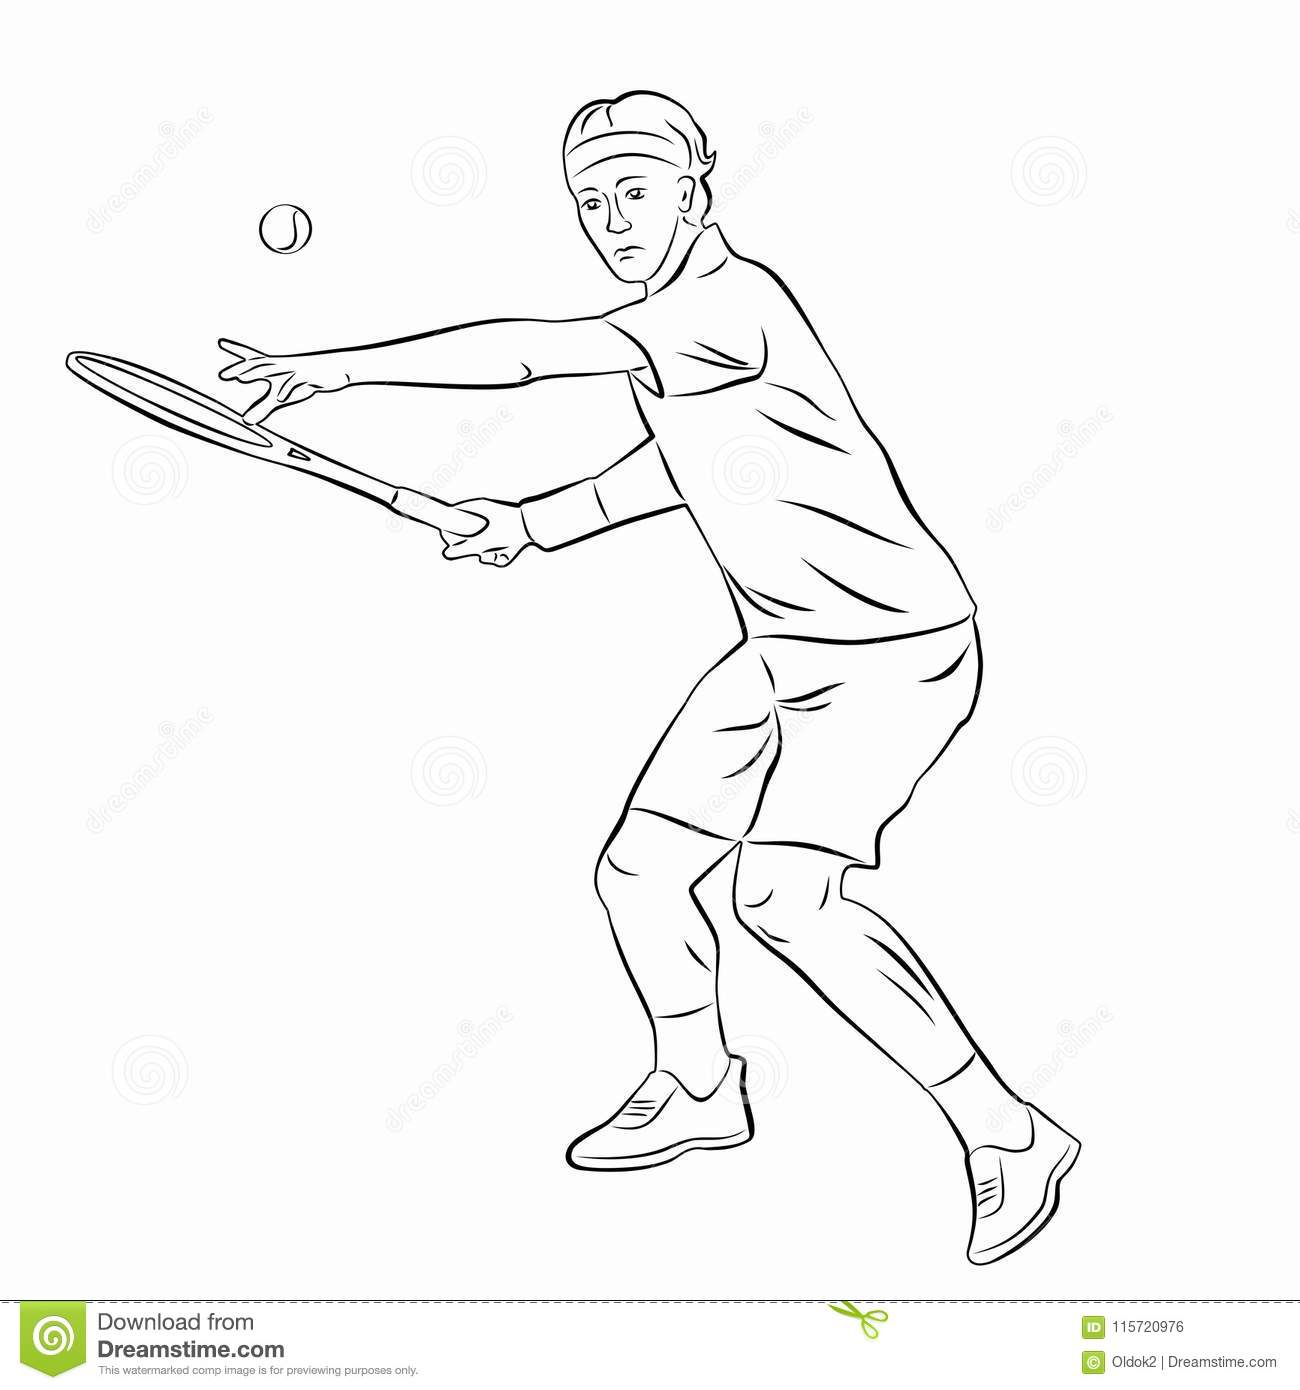 Illustration Of A Tennis Player Vector Draw Stock Vector Illustration Of Forehand Black 115720976